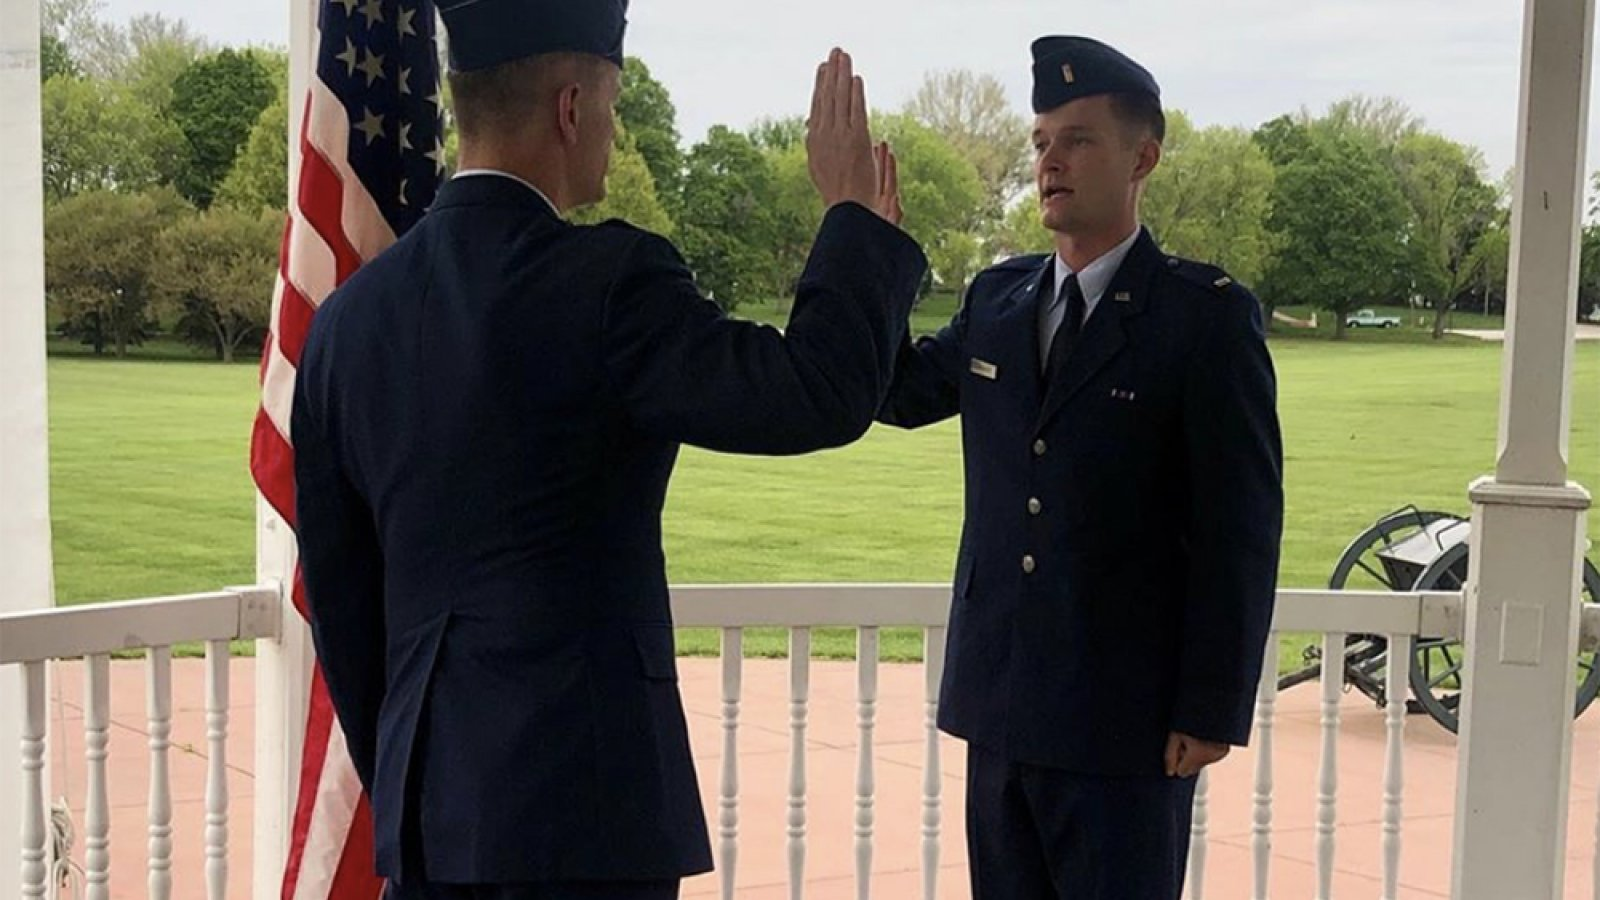 Justin Humphrey (right), who graduate this spring with a degree in civil engineering, recently received his military commission as a second lieutenant in the Air Force. He is one of six 2020 Nebraska Engineering graduates and ROTC cadets to receive commissions.